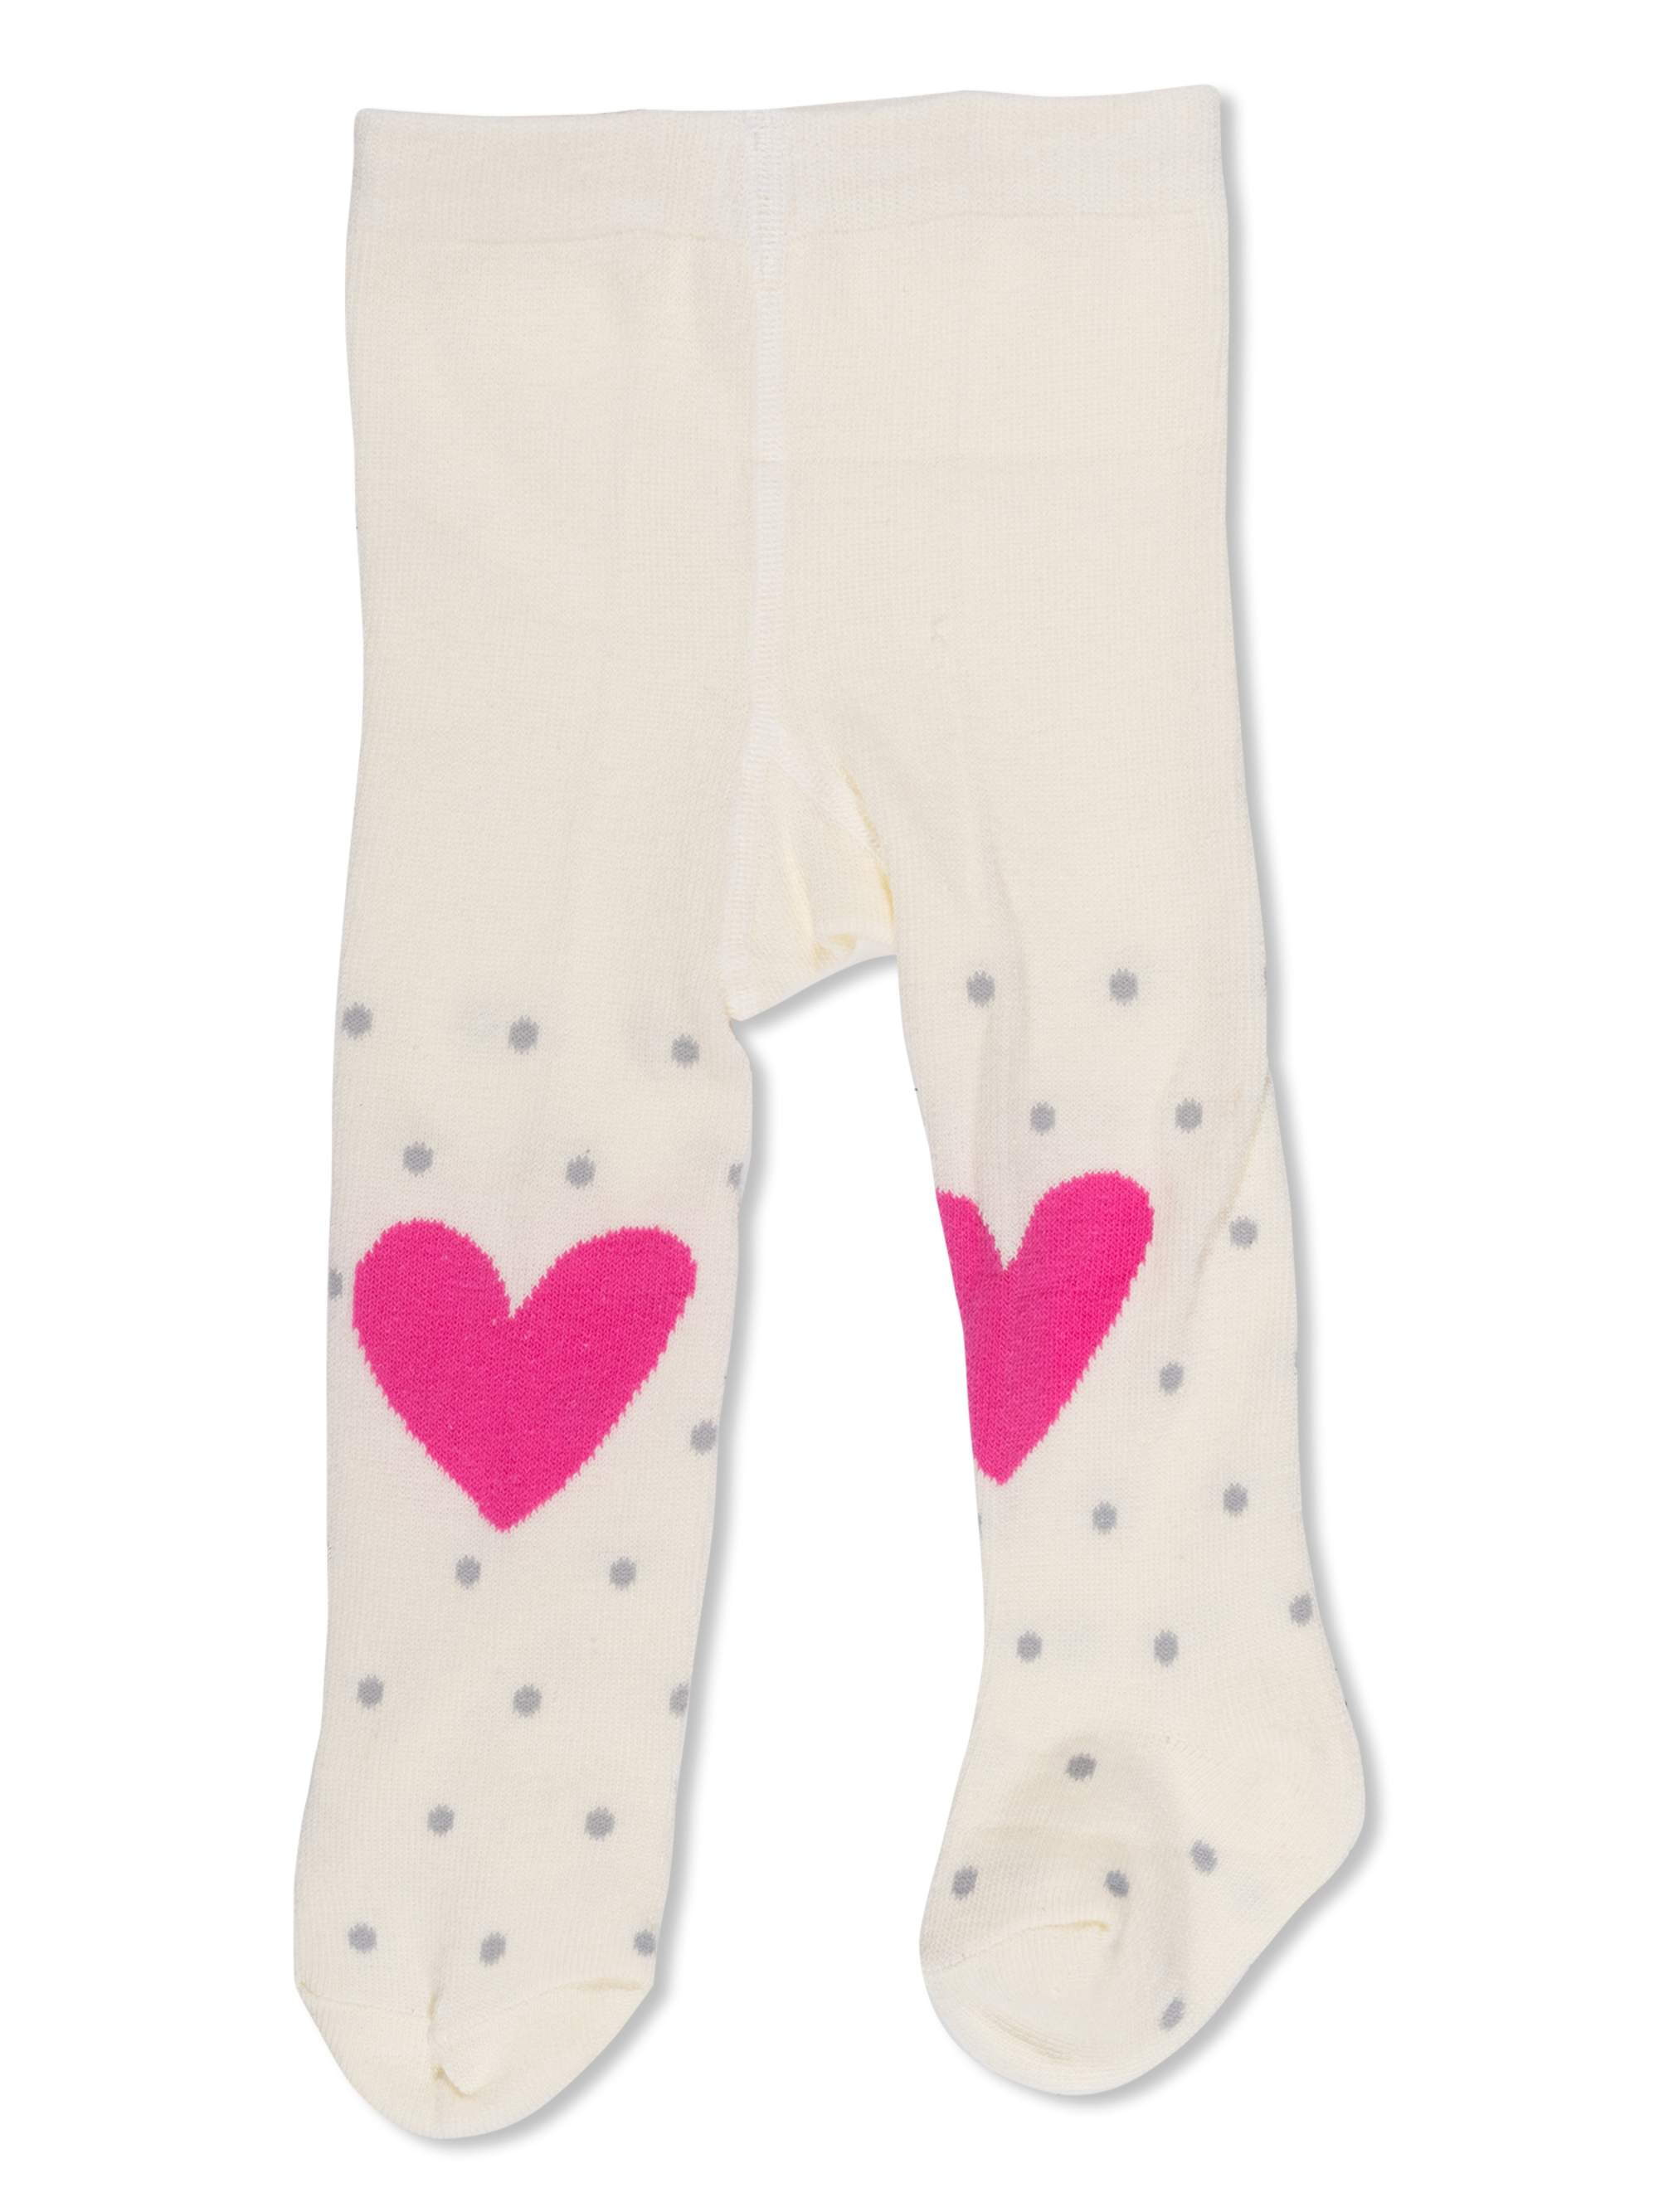 1 Pair Opaque Heart and Dots Design Tights (Infant & Toddler)